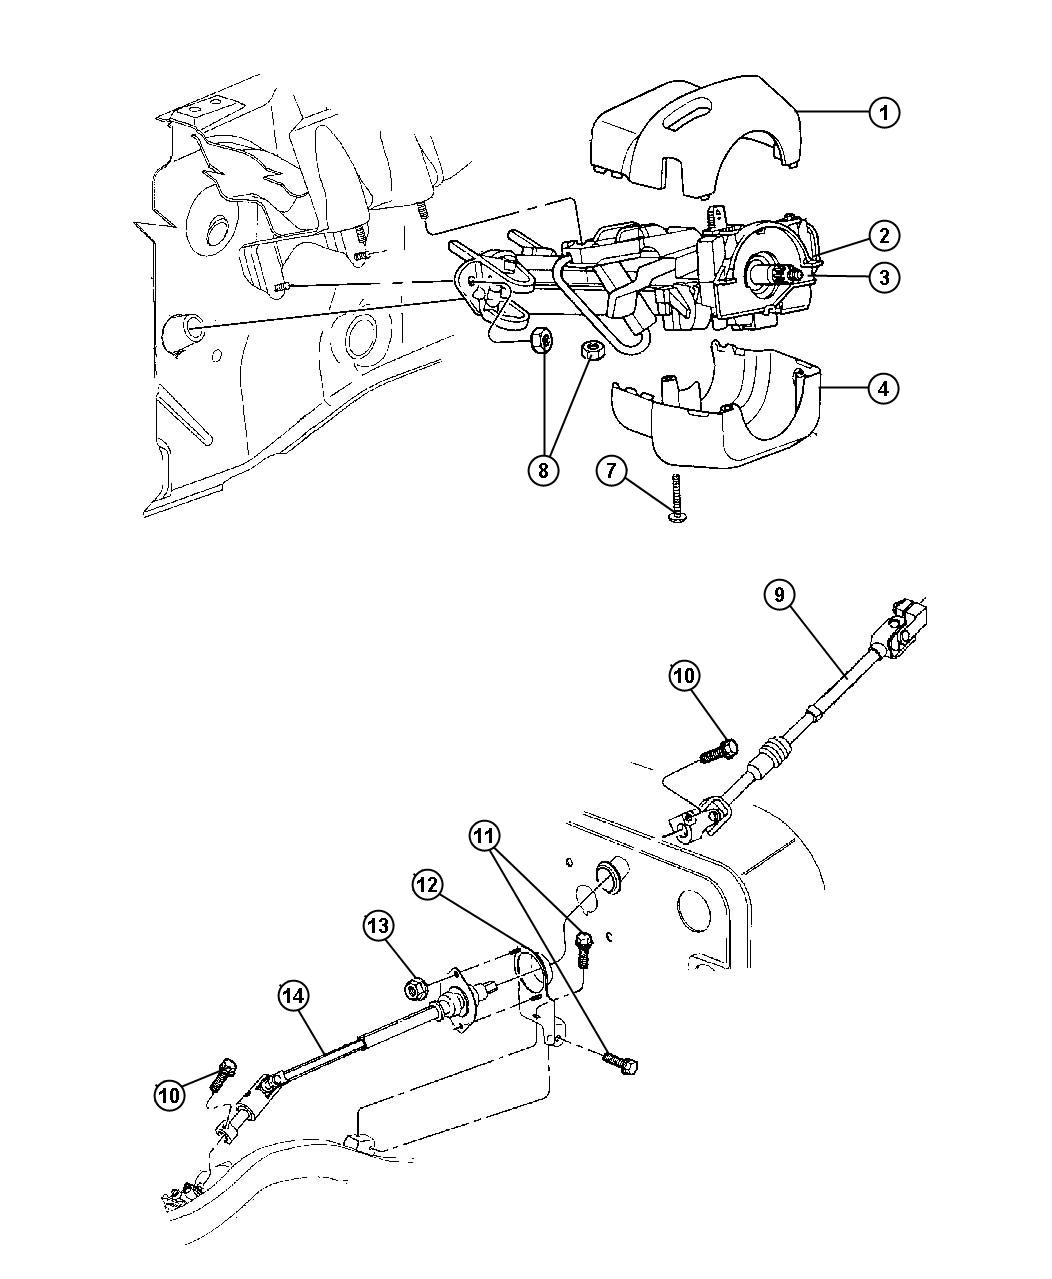 tags: #jeep steering column parts diagram#1977 jeep cj5 steering column  parts#jeep cj5 steering column parts#jeep cj5 steering parts#jeep wrangler  steering